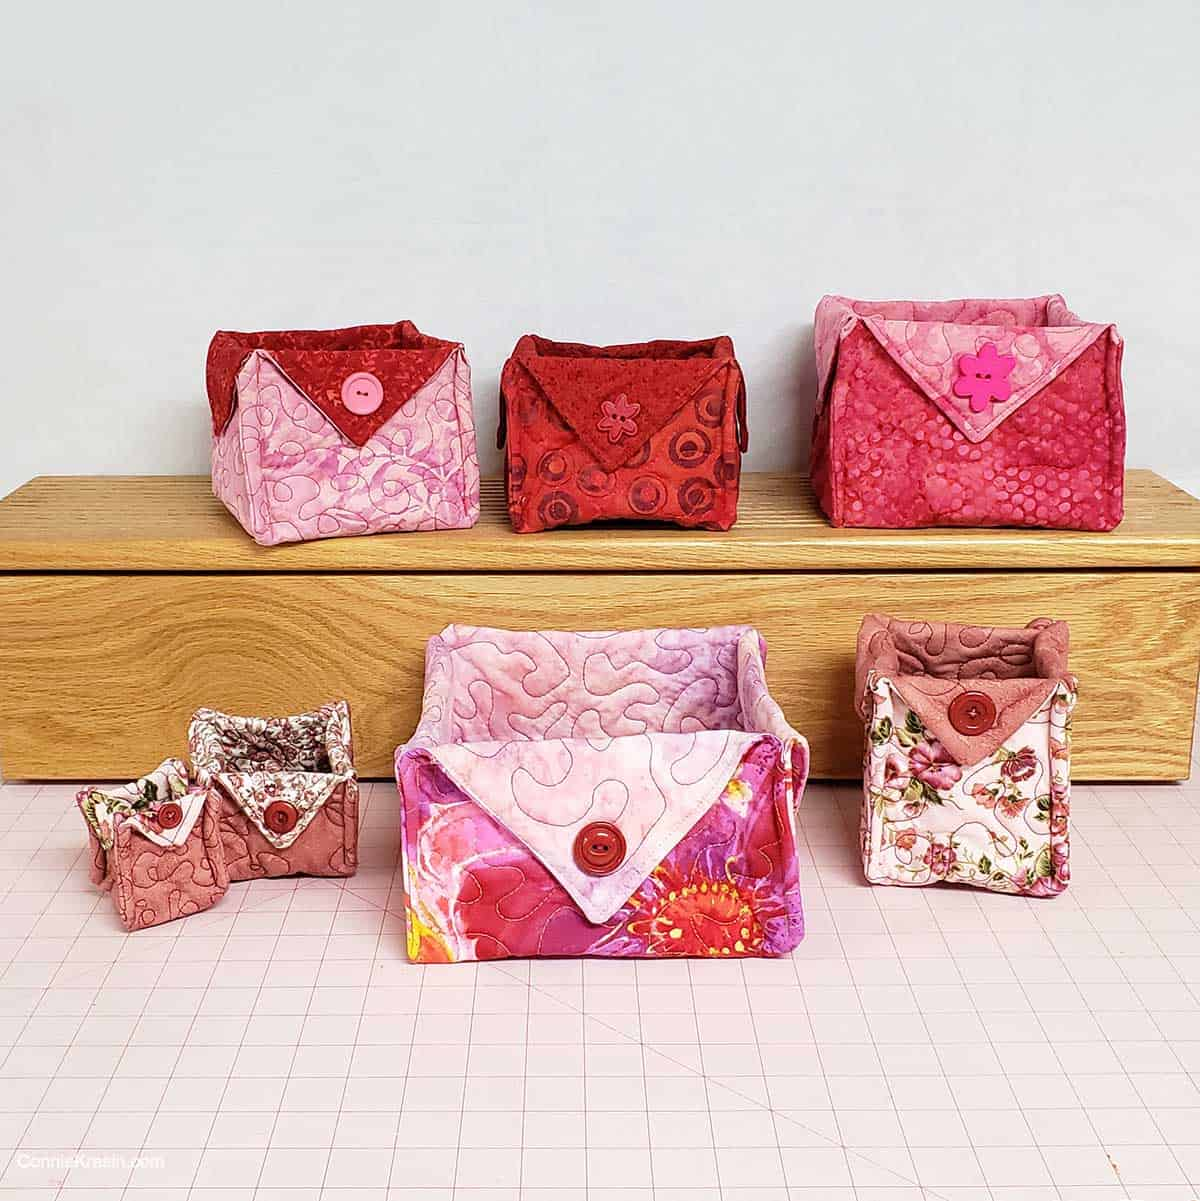 Fabric Baskets for Valentine's Day